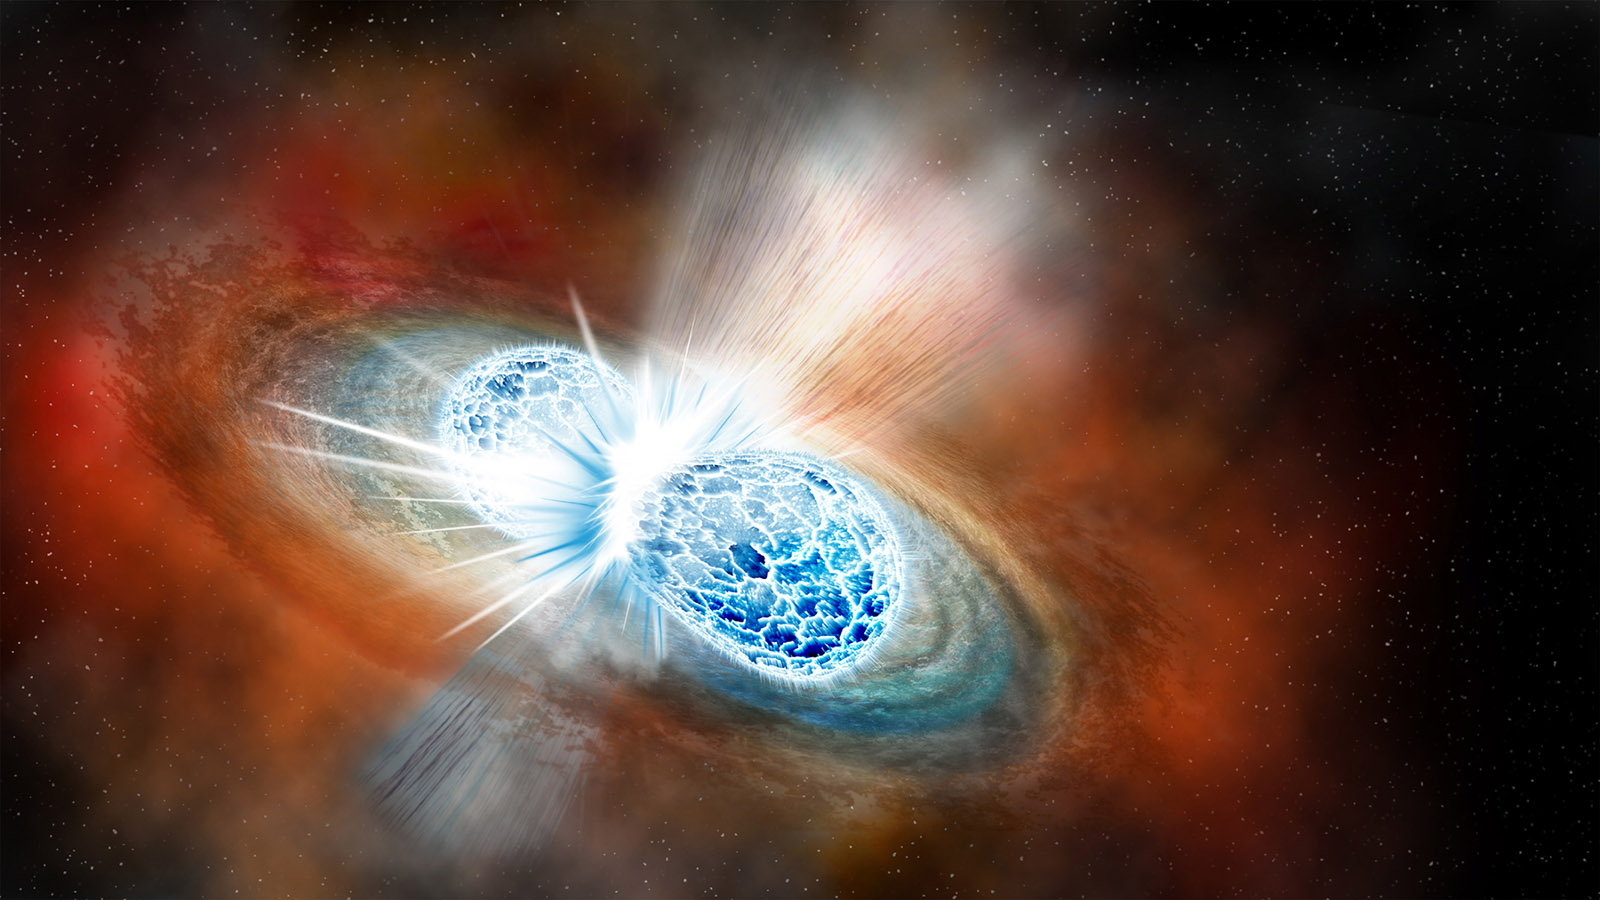 A rendering of the collision between two neutron stars, observed by researchers working with the LIGO and Virgo gravitational wave detectors